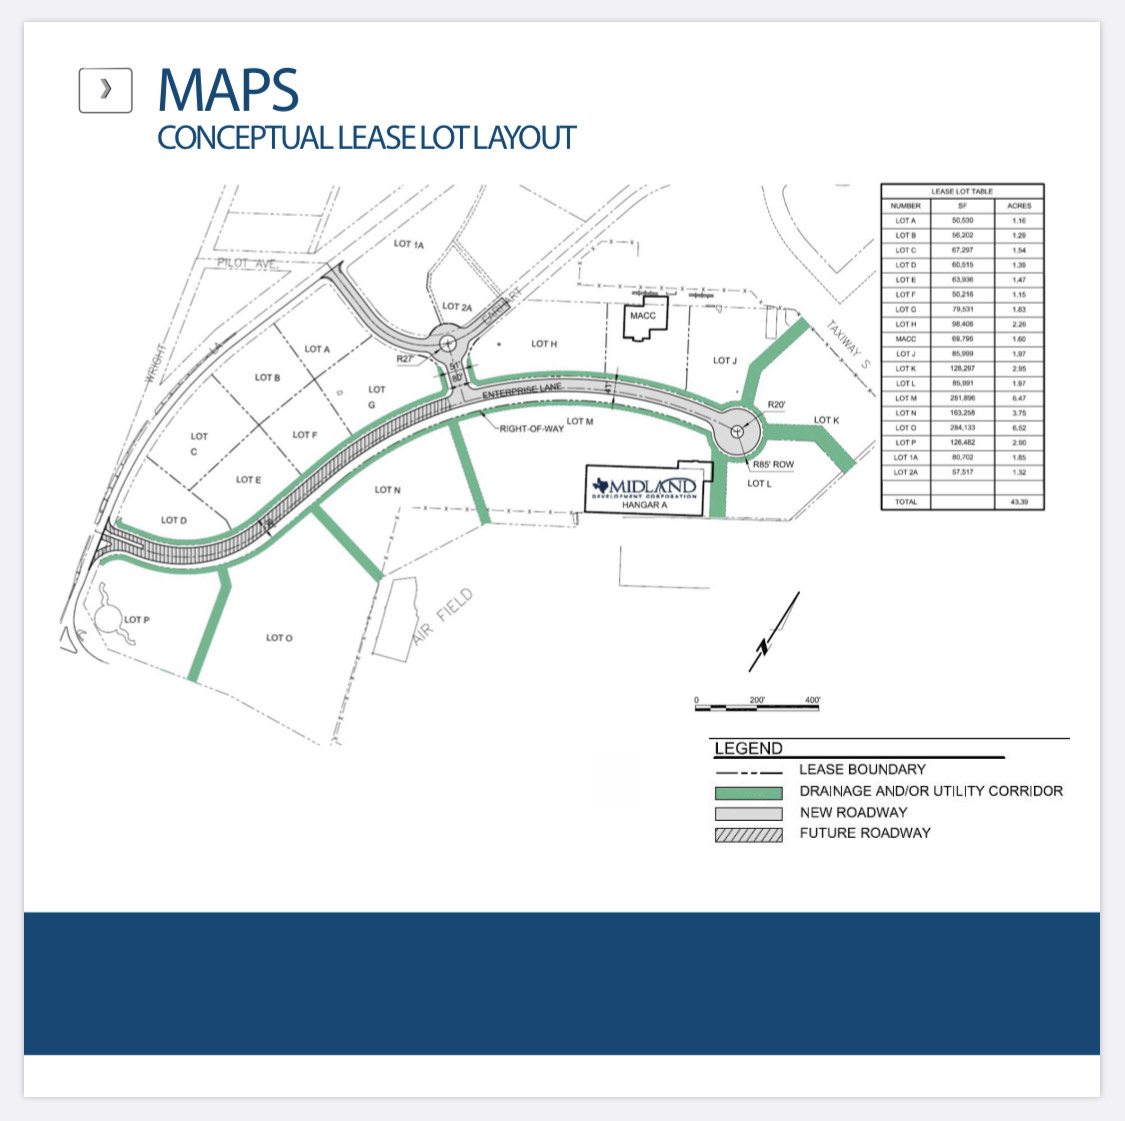 lease lot layout map